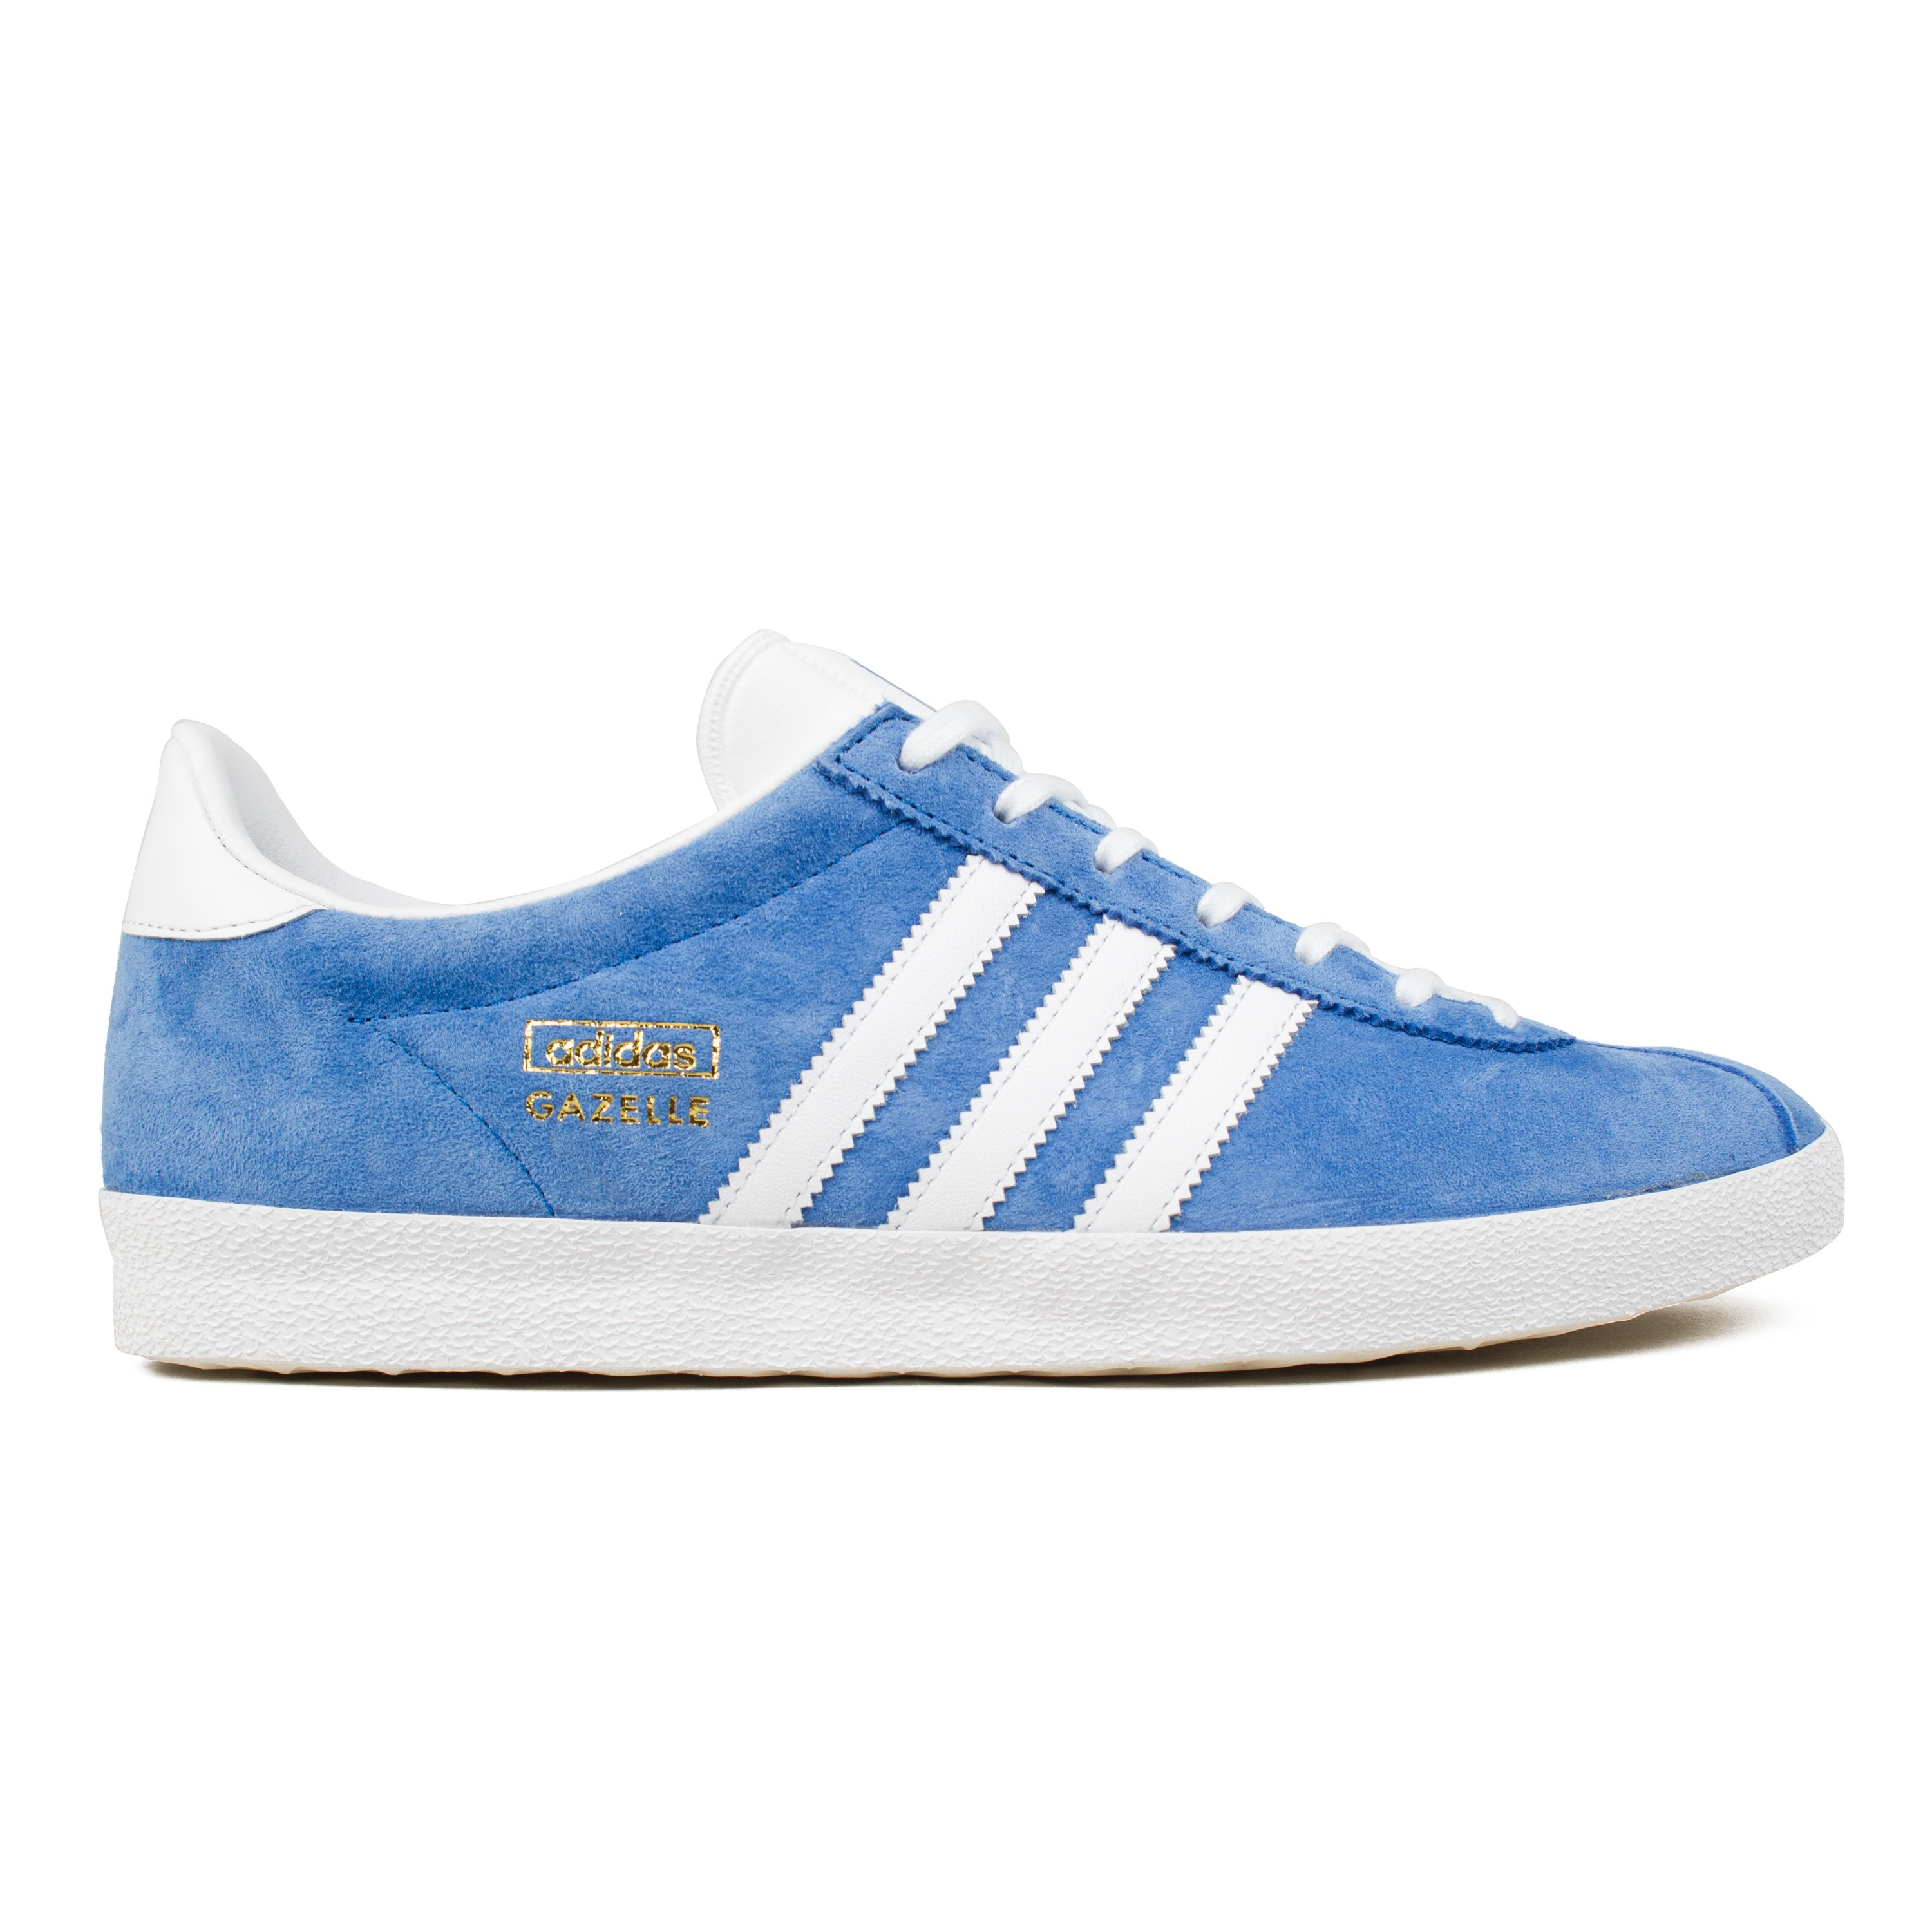 adidas shoes blue and white. (air force blue/white/metallic gold) adidas shoes blue and white